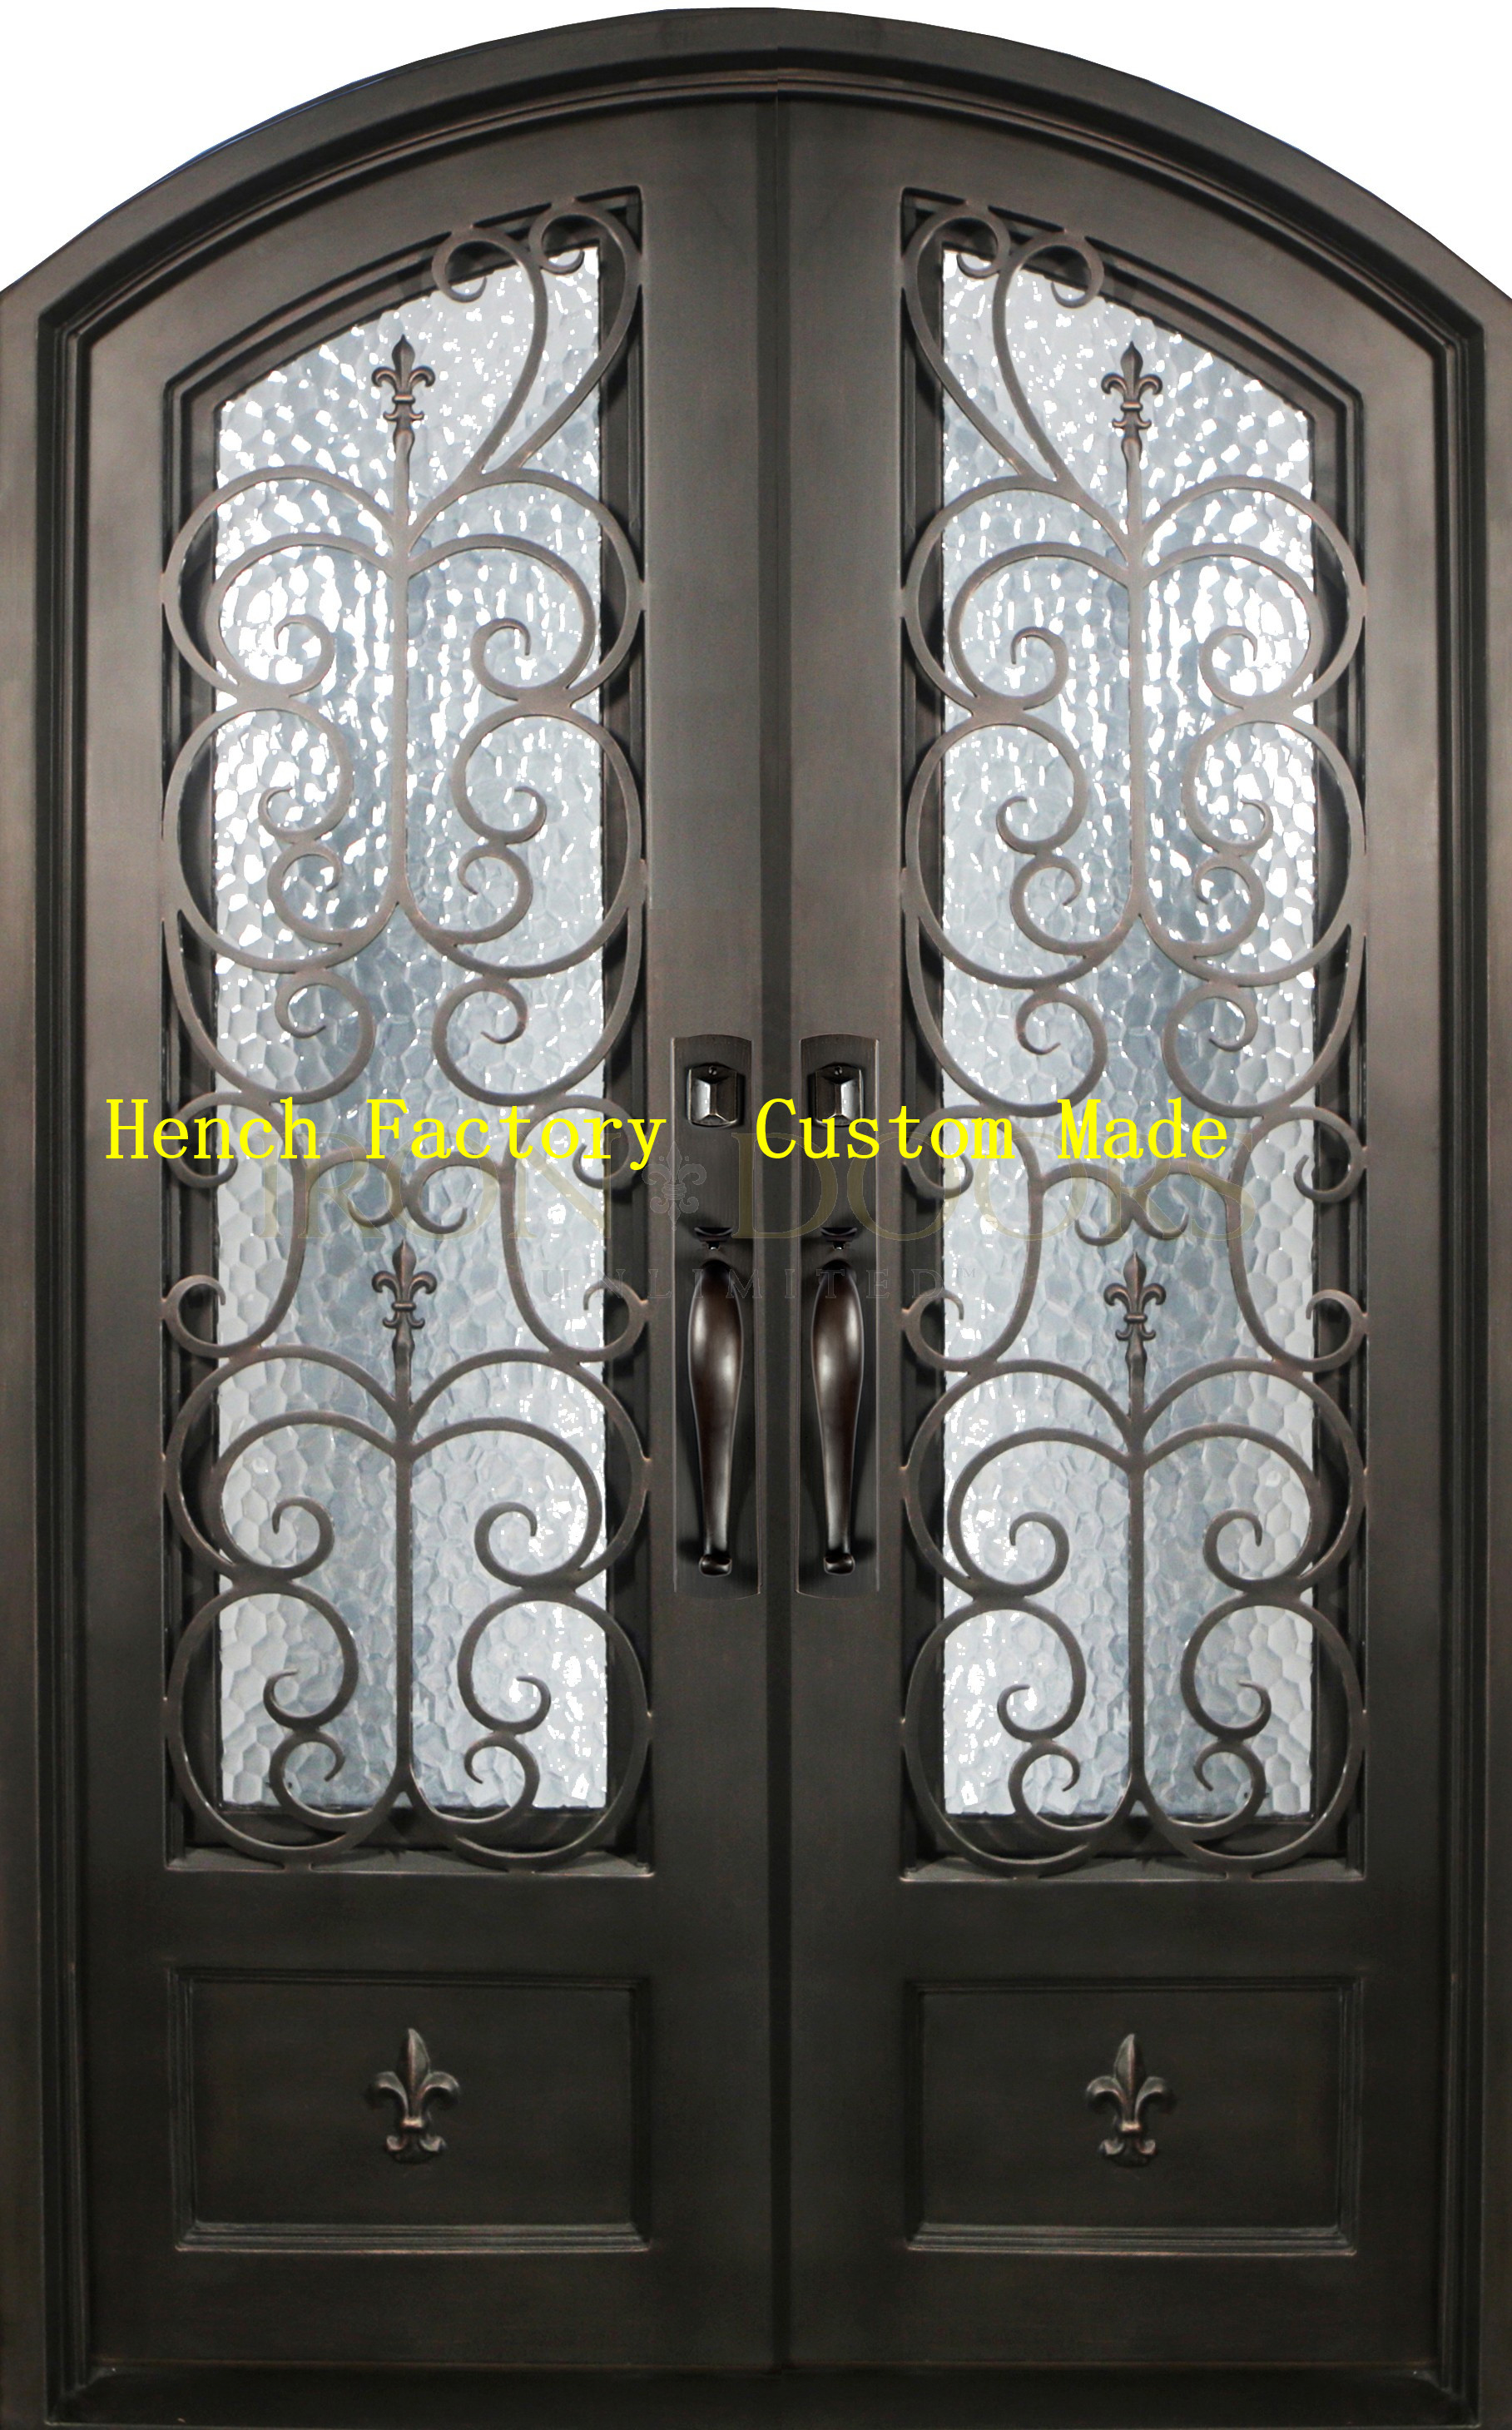 Shanghai Hench Brand China Factory 100% Custom Made Sale Australia Single Iron Door With Sidelights